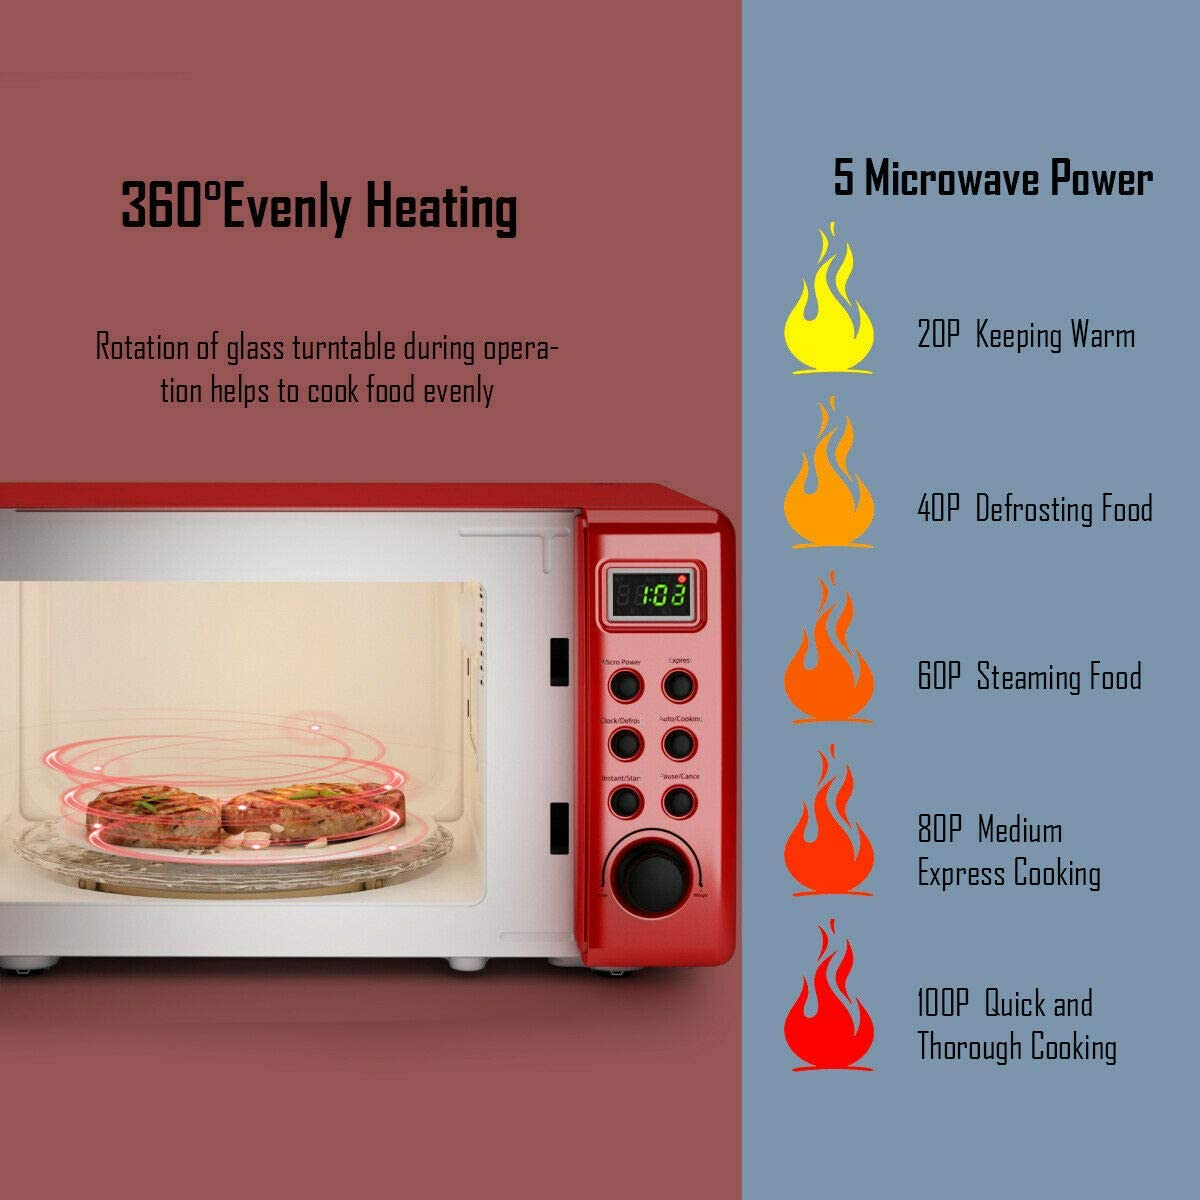 Costway Retro Microwave Oven Power levels